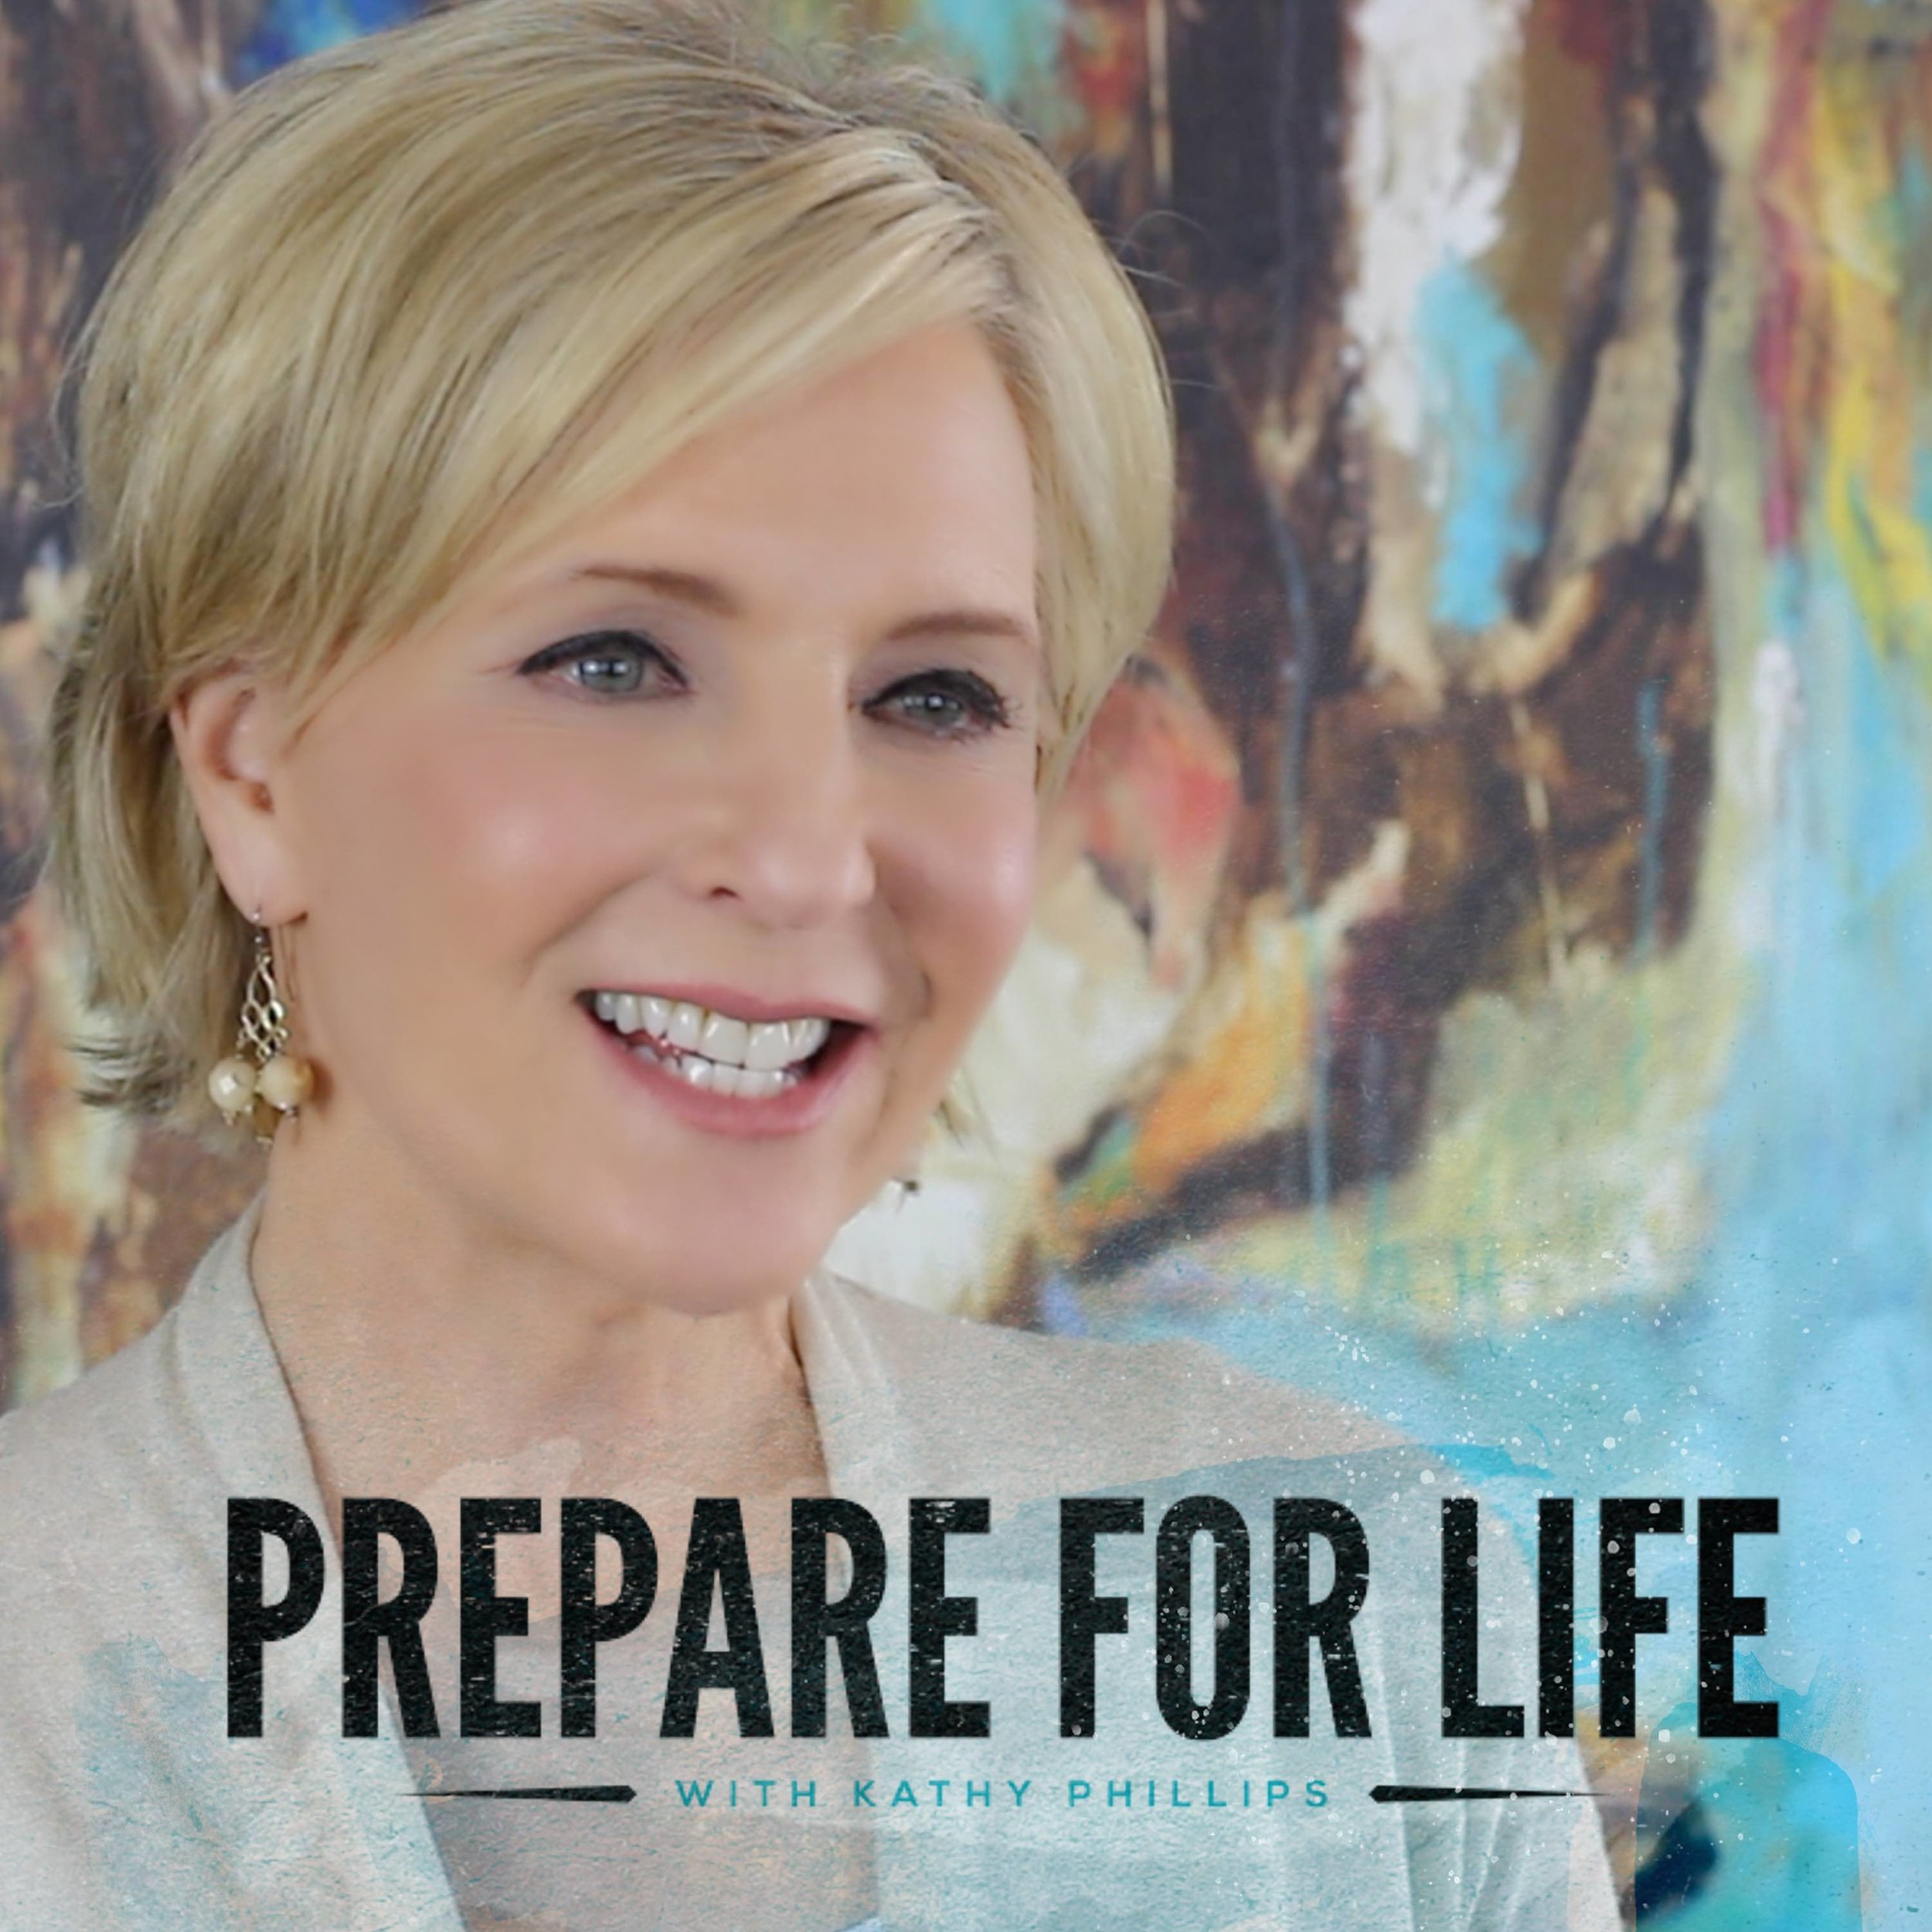 Prepare for Life with Kathy Phillips Podcast Cover Final small.jpg